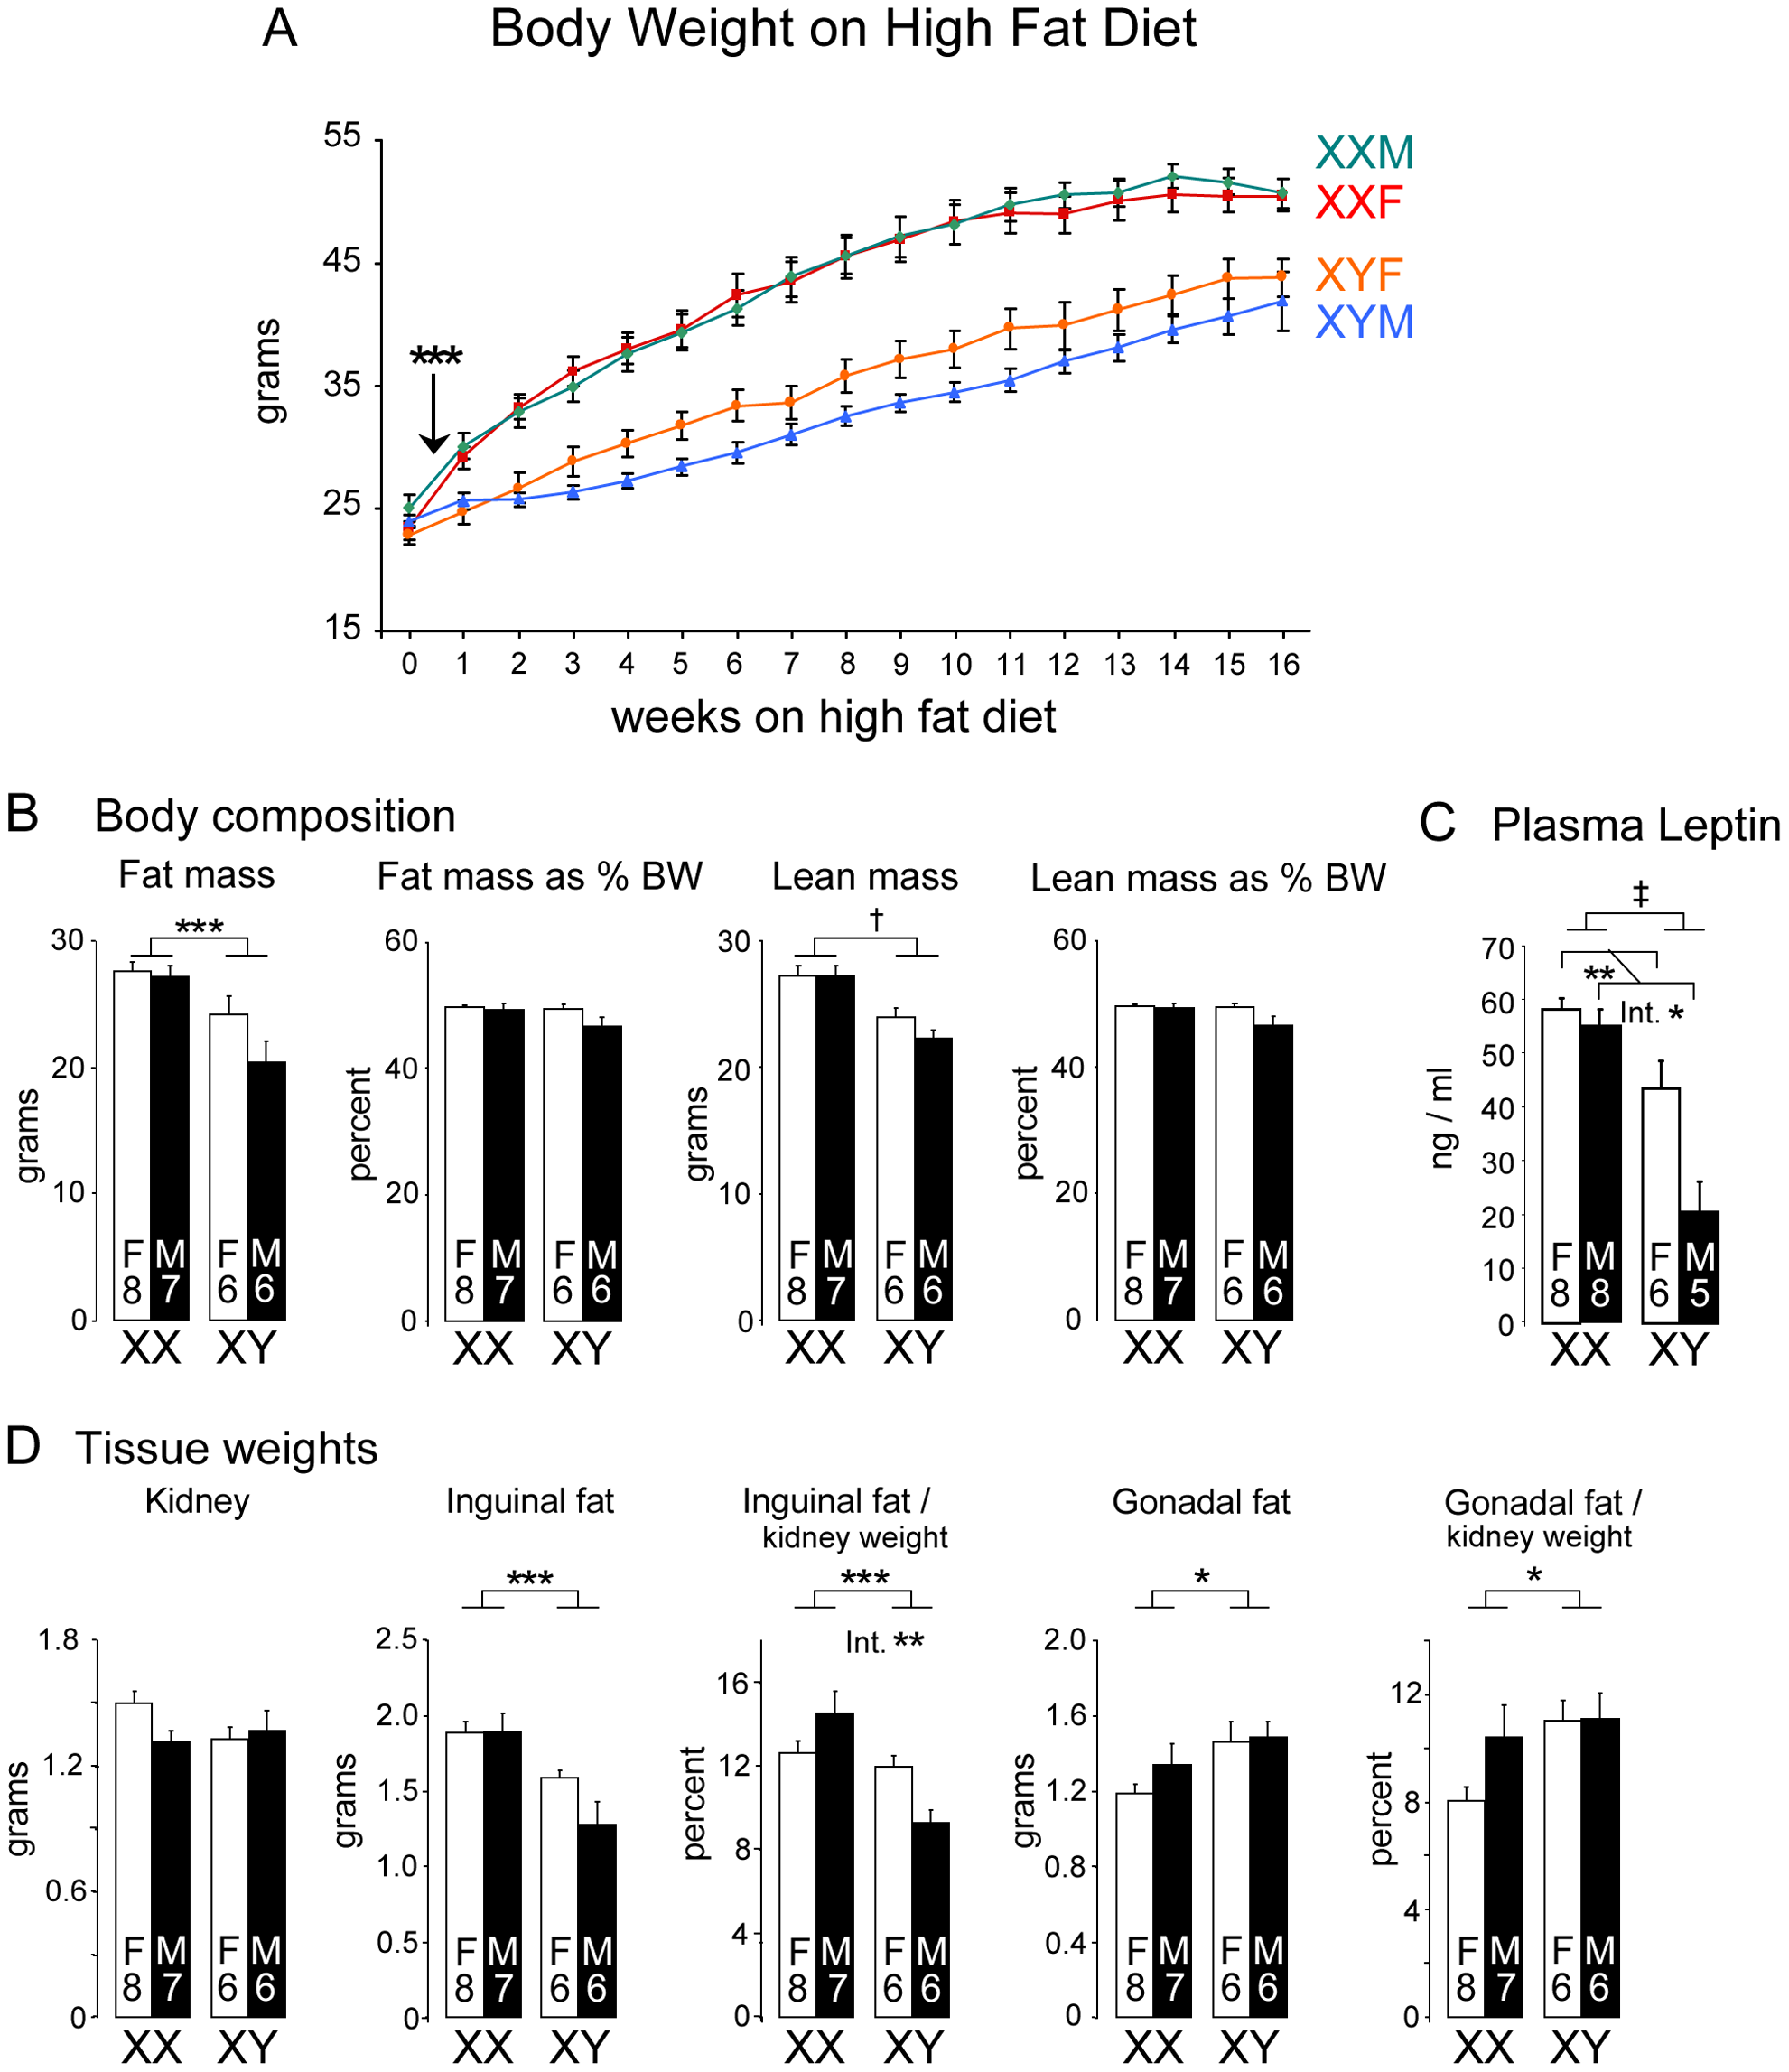 Enhanced weight gain and fat mass in XX compared to XY mice fed a high fat-high carbohydrate diet.